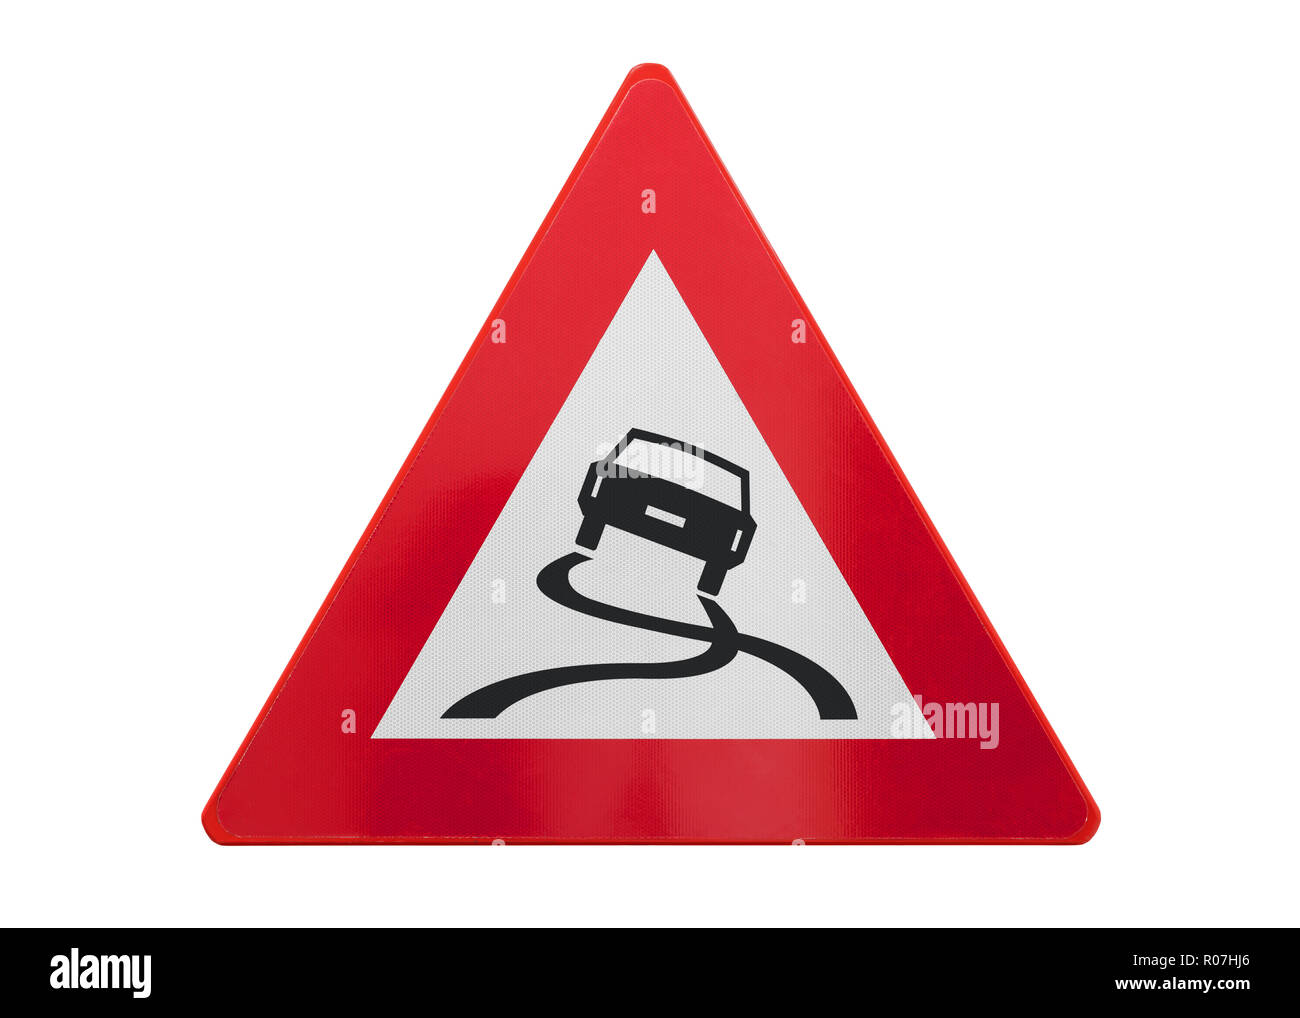 Traffic sign isolated - Slippery road - On white - Stock Image